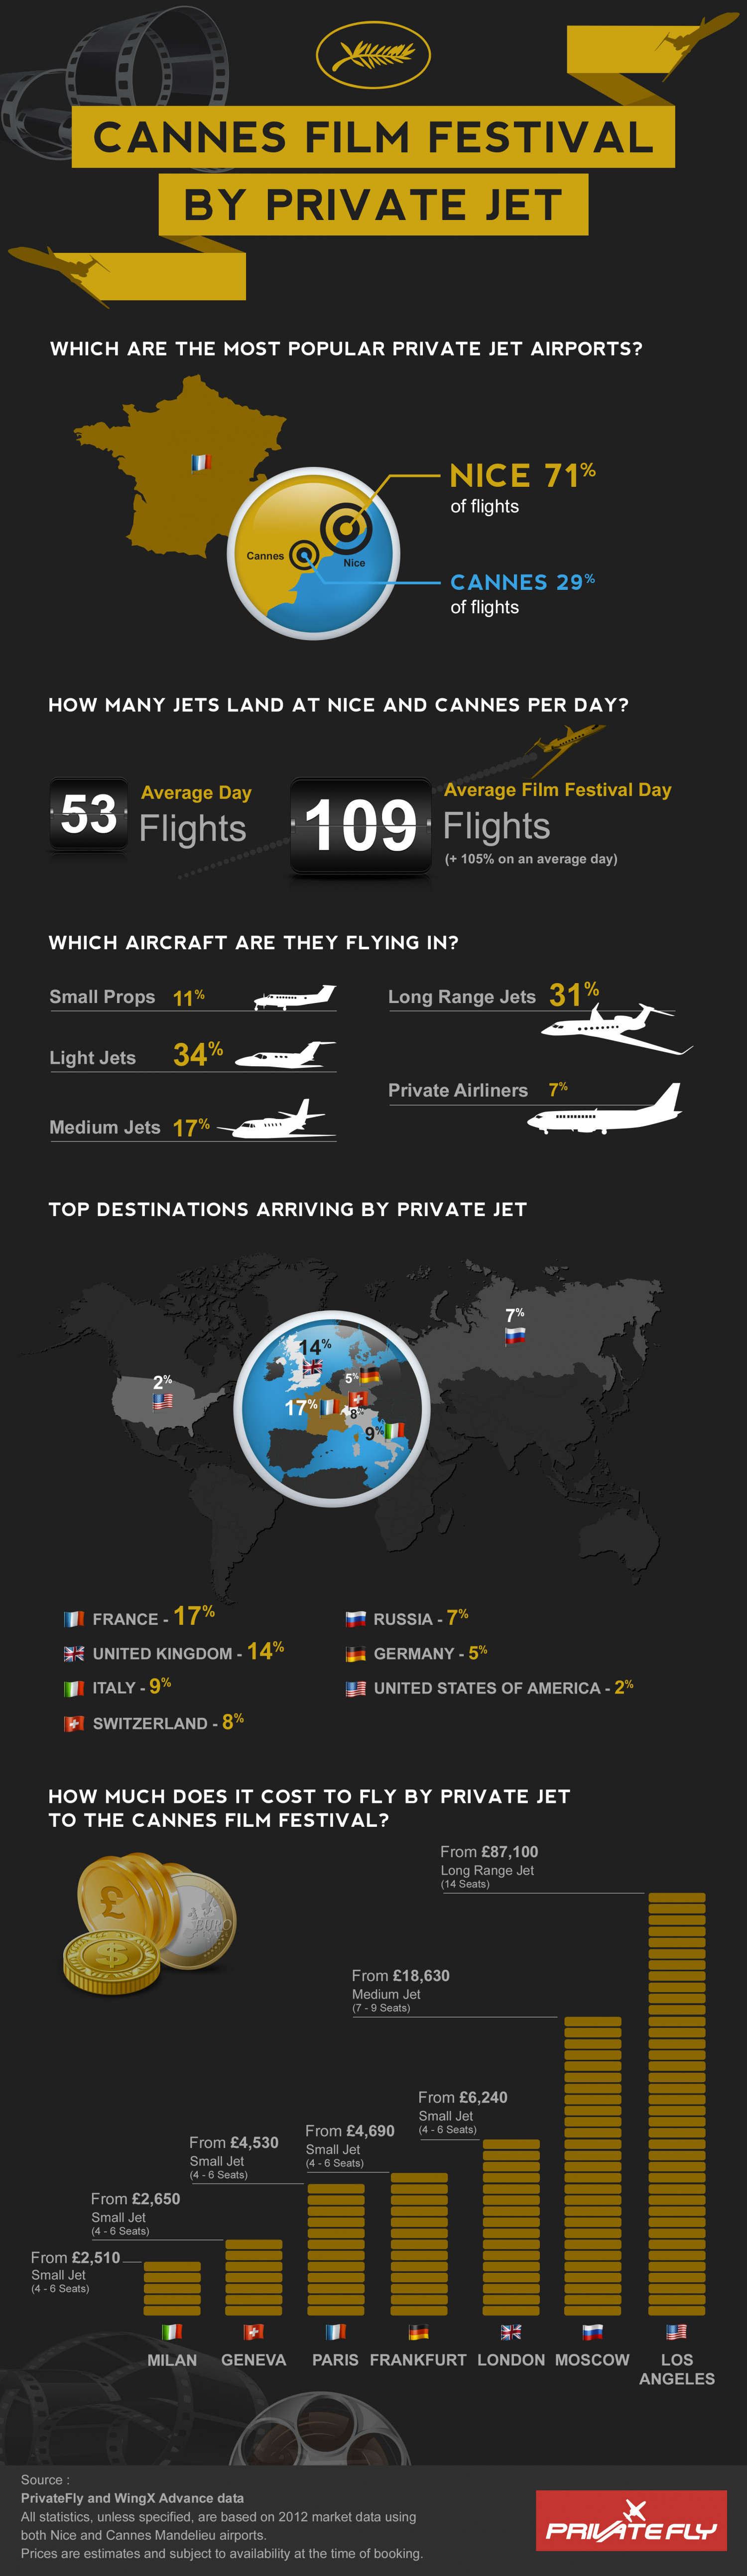 Cannes Film Festival by Private Jet Infographic